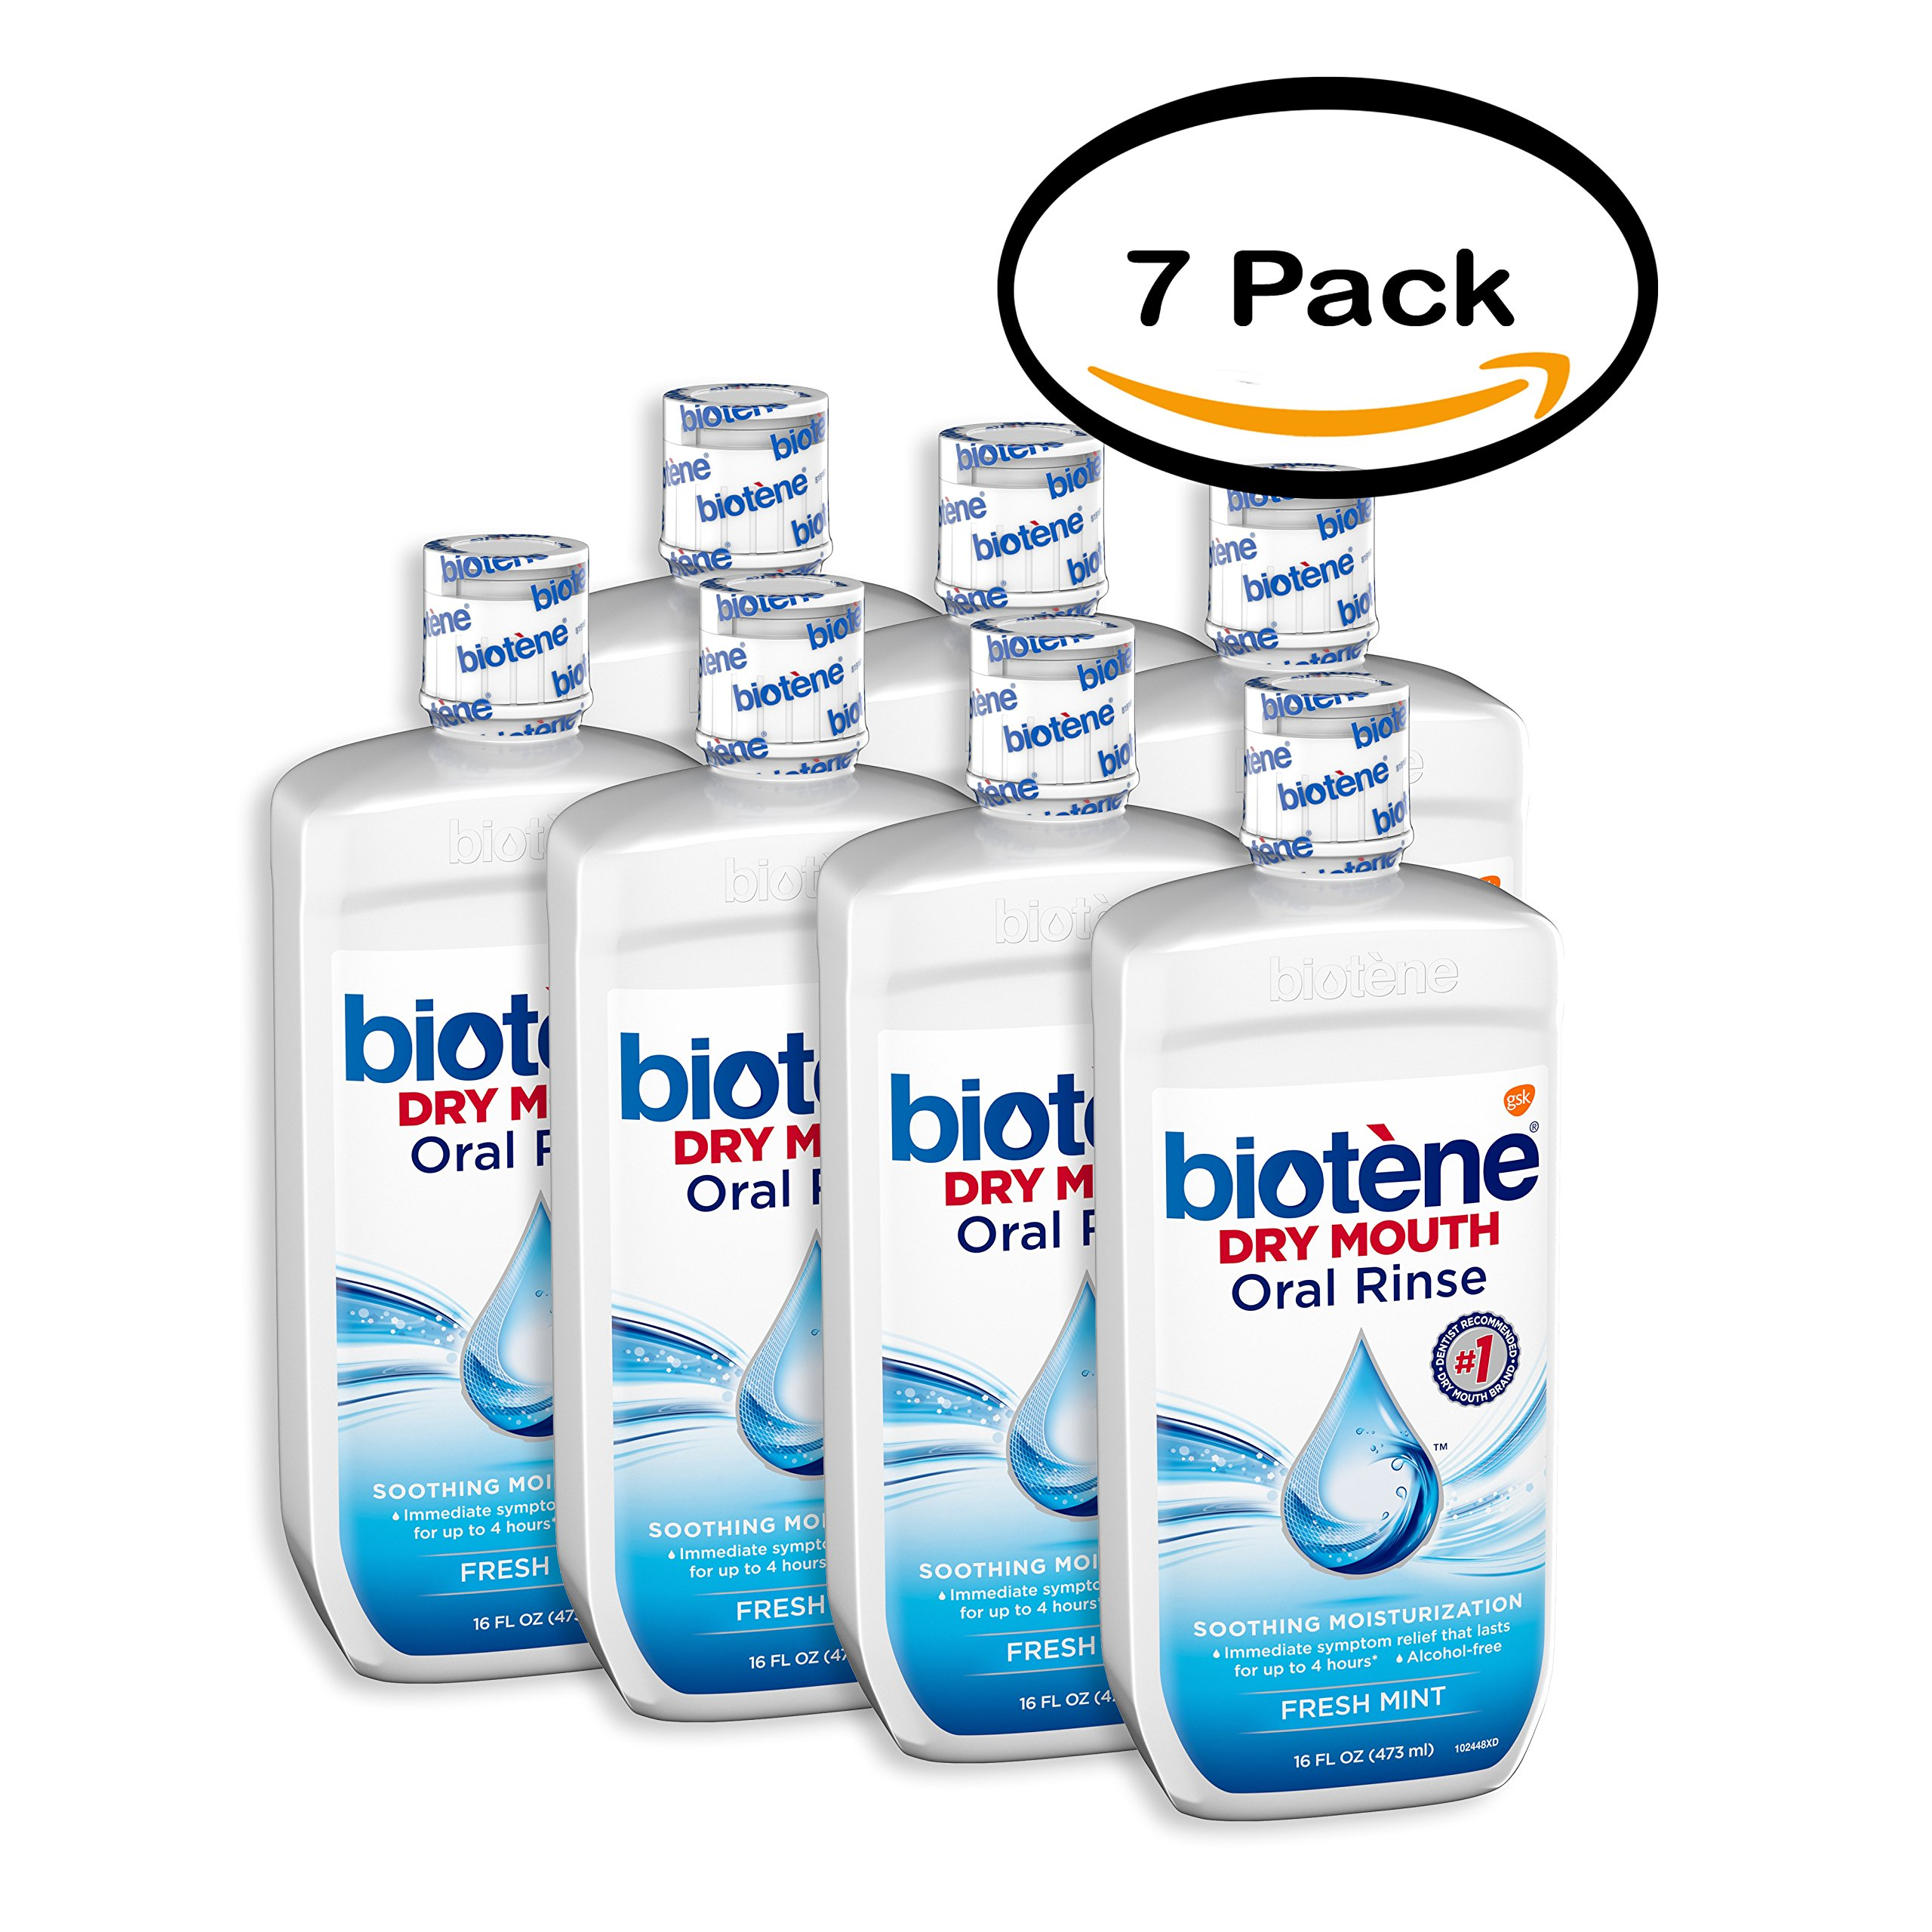 PACK OF 7 - Biotene Dry Mouth Mouthwash, Fresh Mint Flavor, 16 fl oz